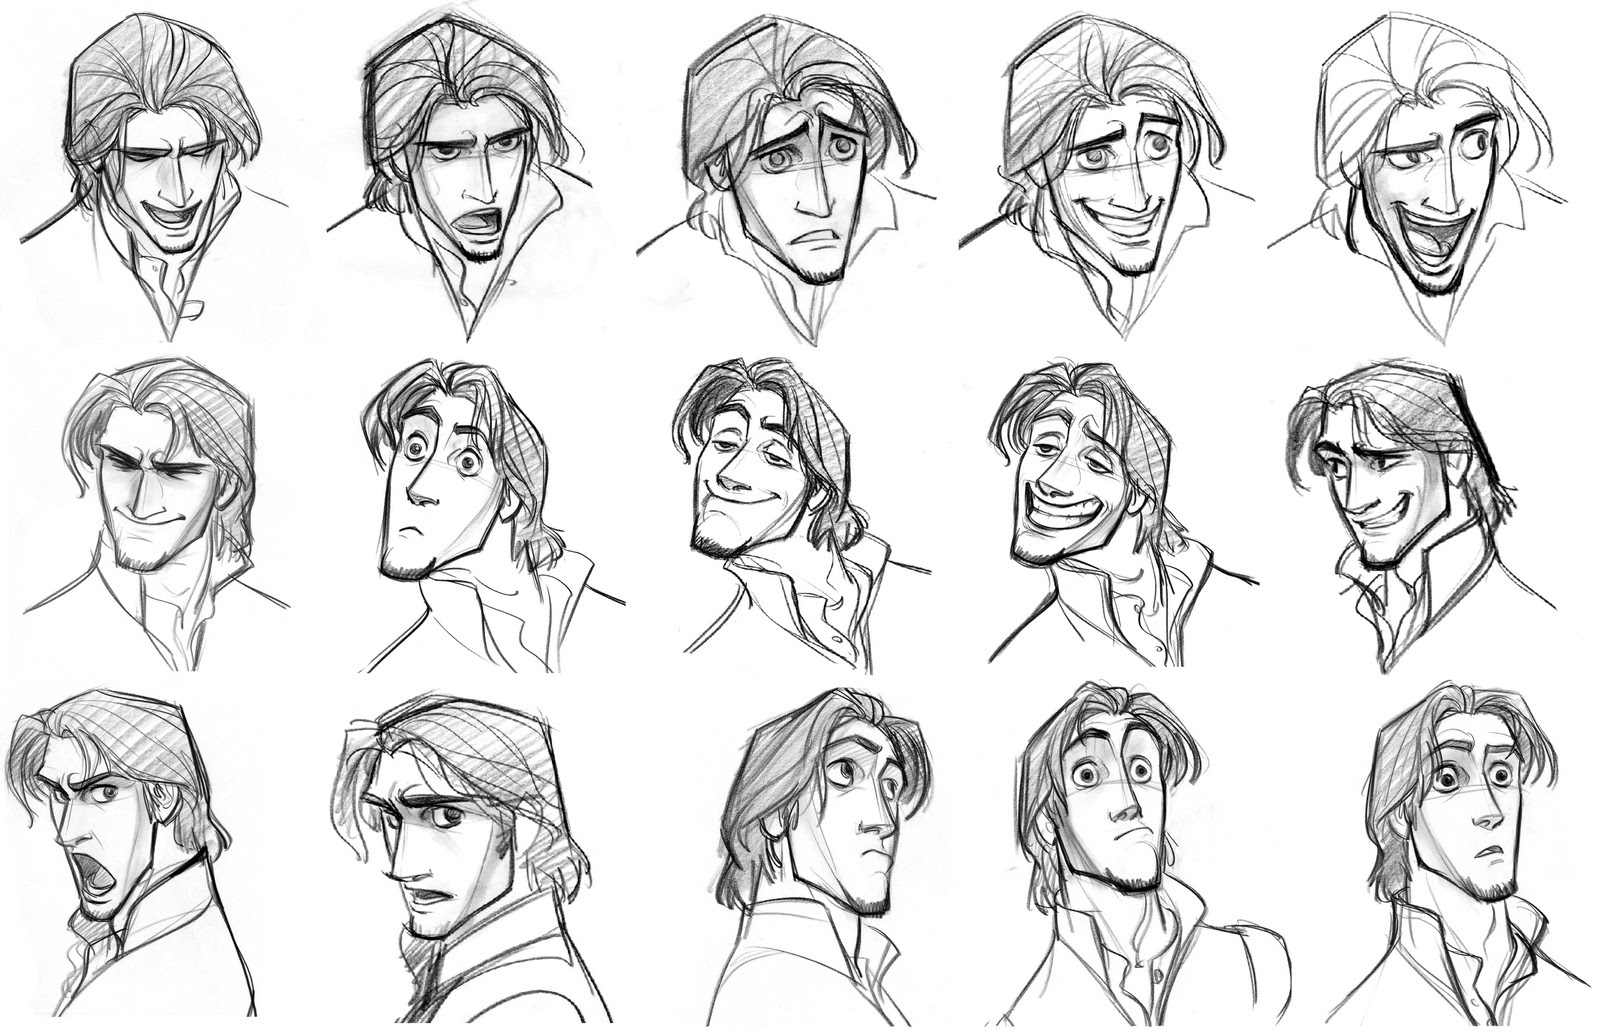 Character Design Where To Start : Disney sketches images flynn rider eugene fitzherbert